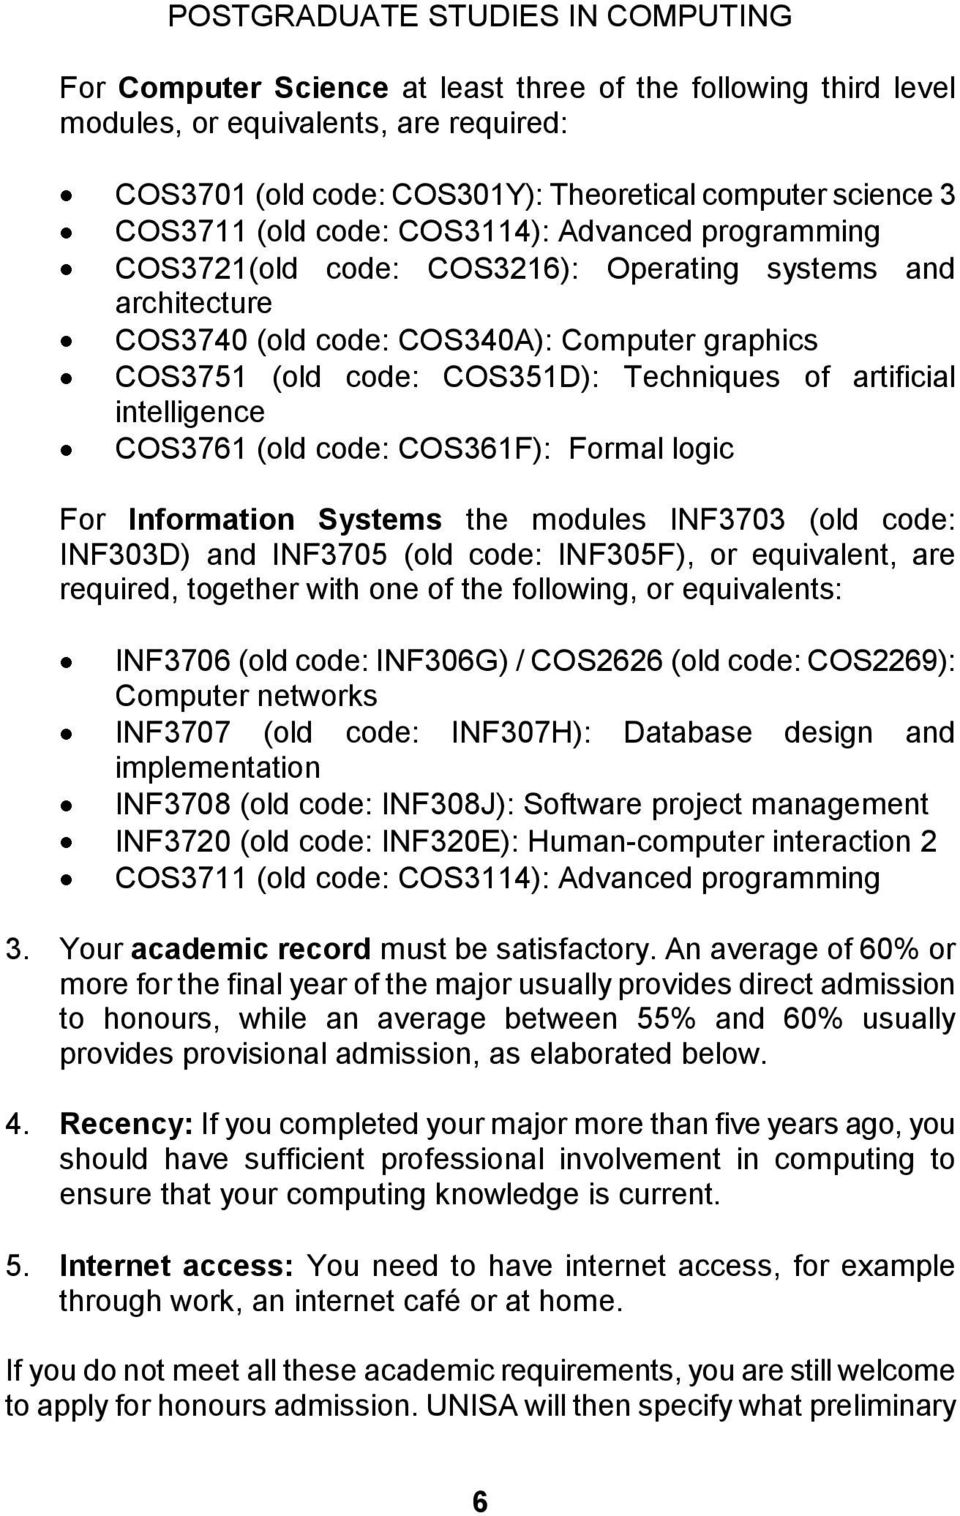 COS3761 (old code: COS361F): Formal logic For Information Systems the modules INF3703 (old code: INF303D) and INF3705 (old code: INF305F), or equivalent, are required, together with one of the